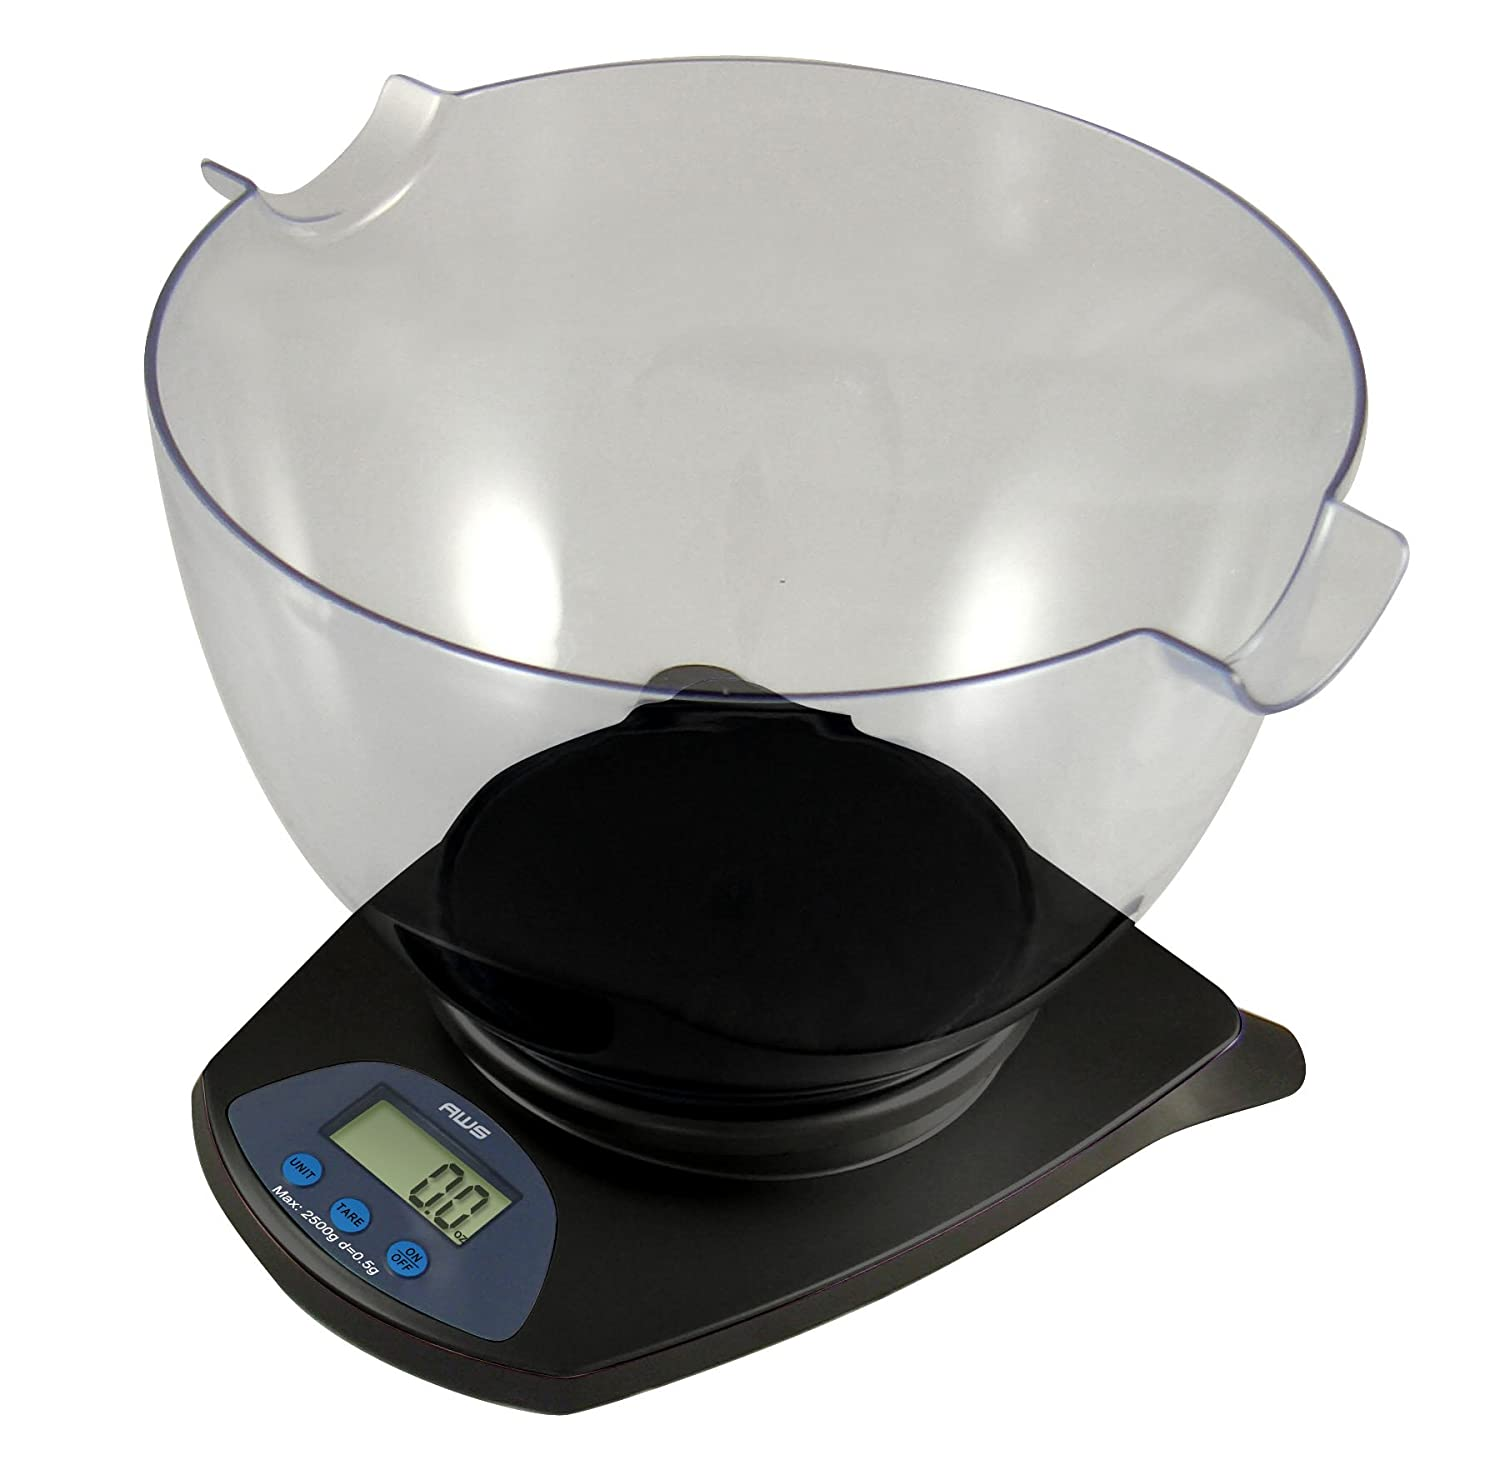 Amazon.com: American Weigh Scales HB 11 Digital Kitchen Scale With Large  Removable Weighing Bowl: Kitchen U0026 Dining